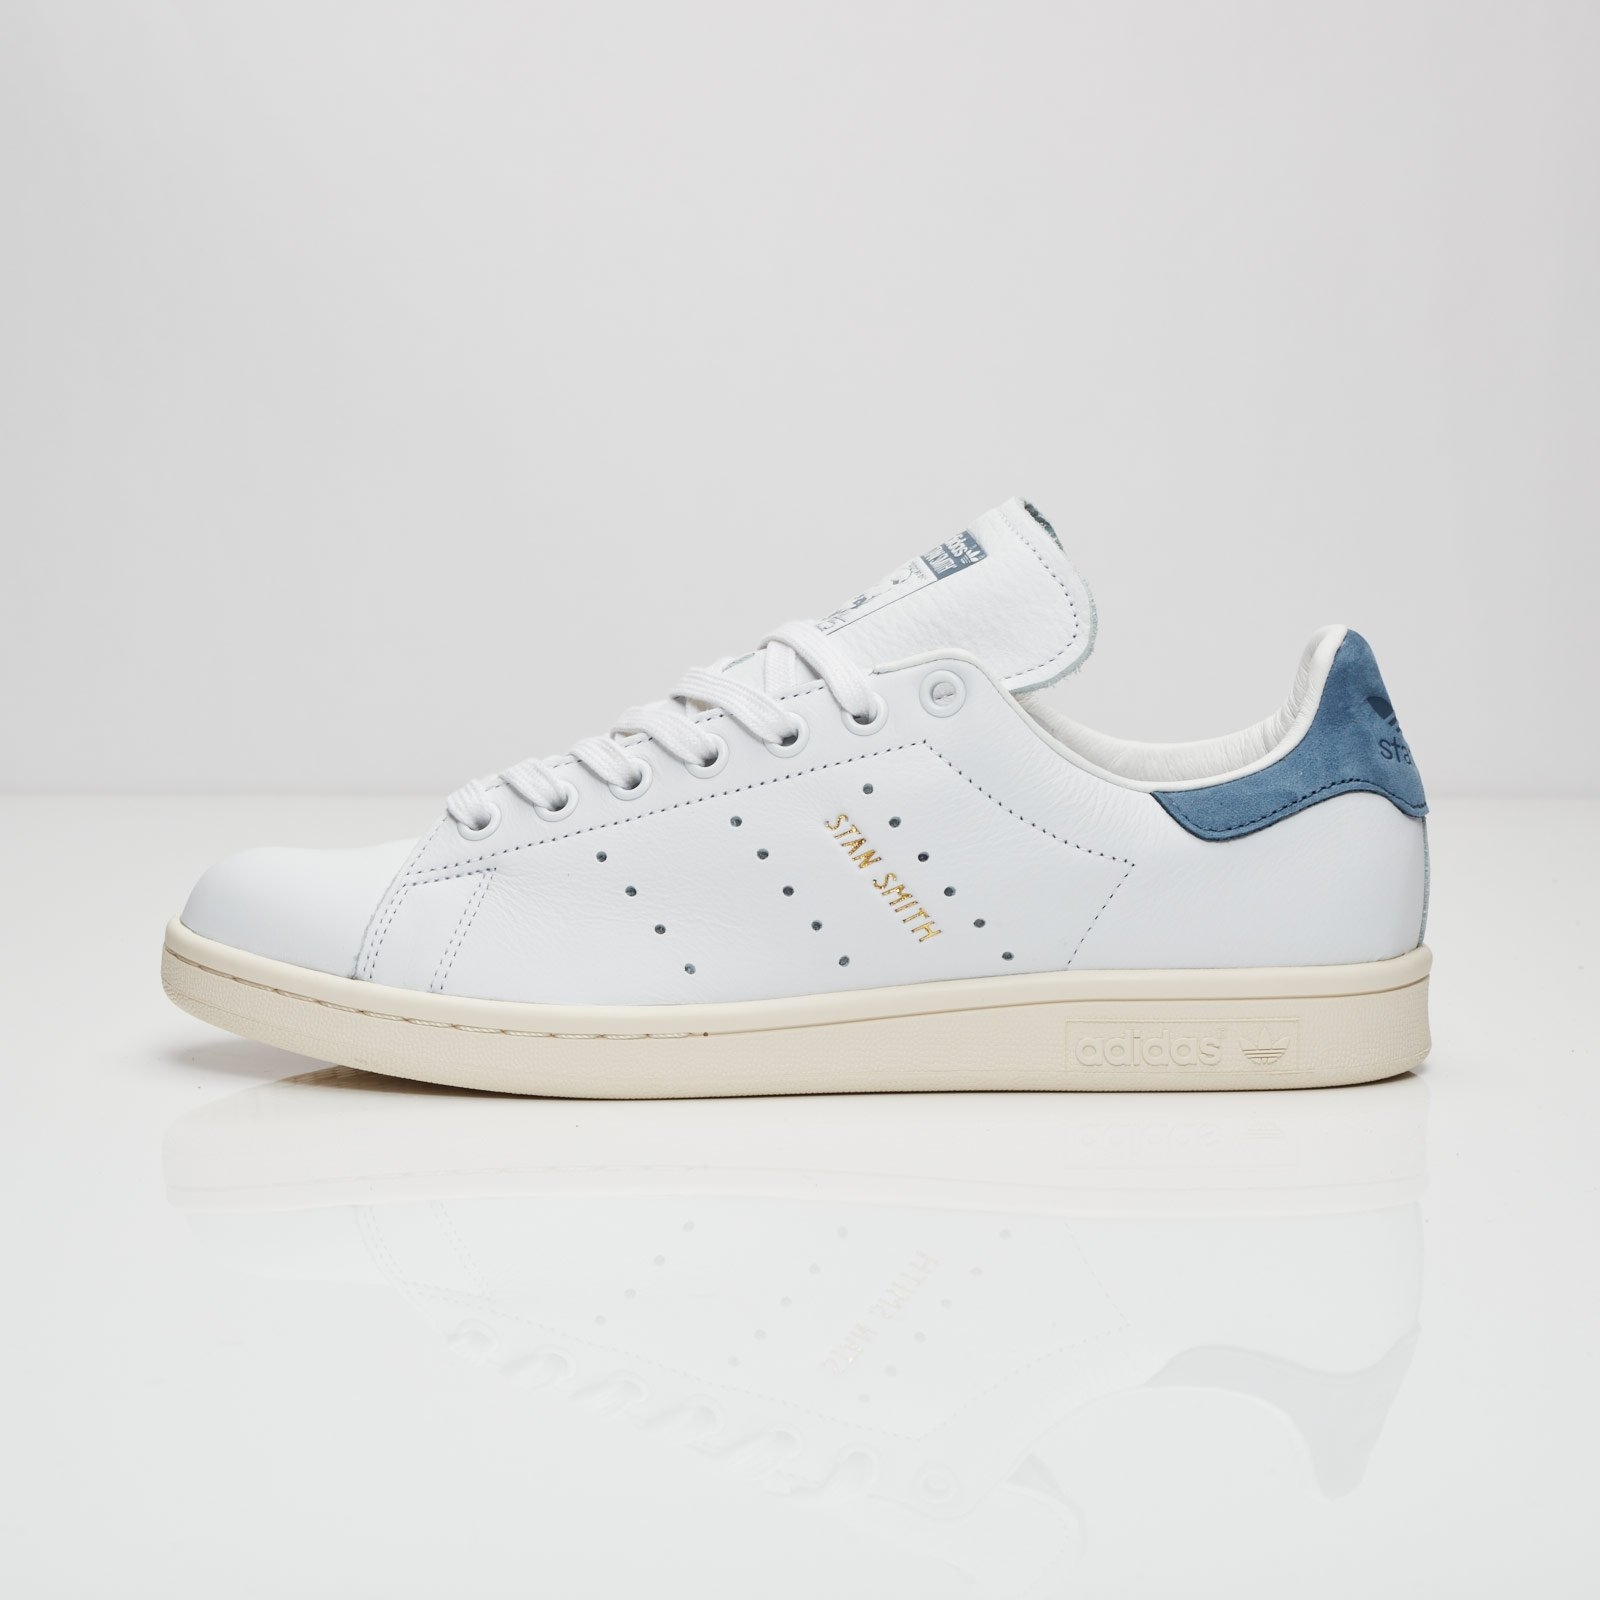 adidas originals stan smith trainers in white s80026